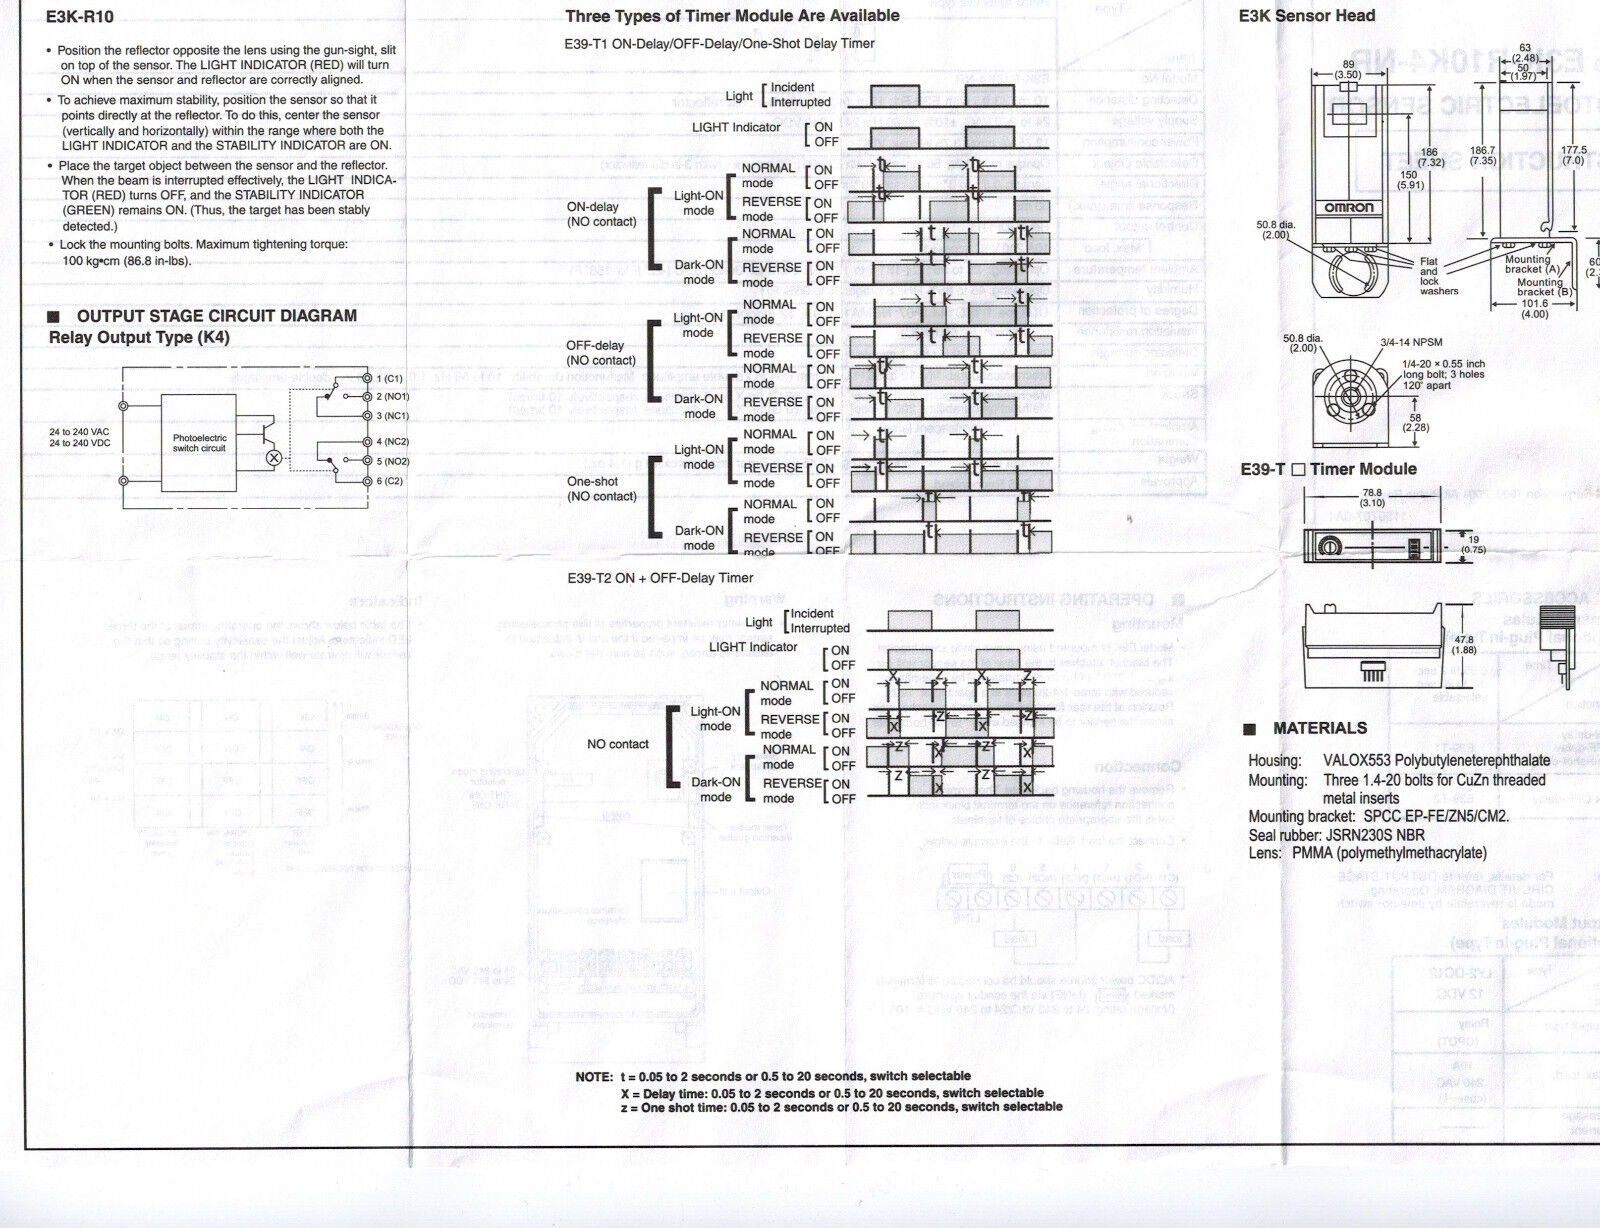 Omron E3k R10k4 Nr Wiring Diagram Free Download • Oasis-dl.co